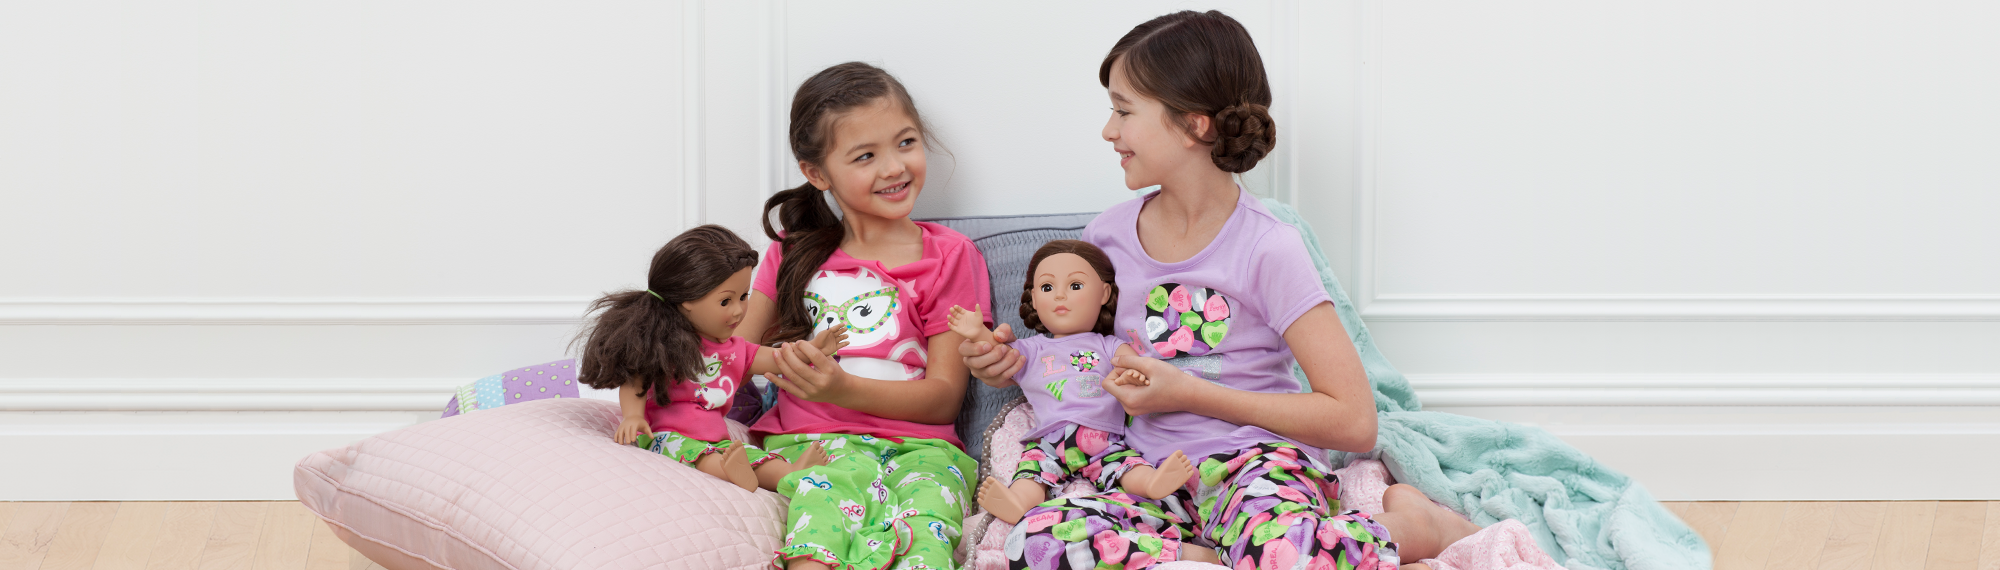 Sleepwear for Toddlers